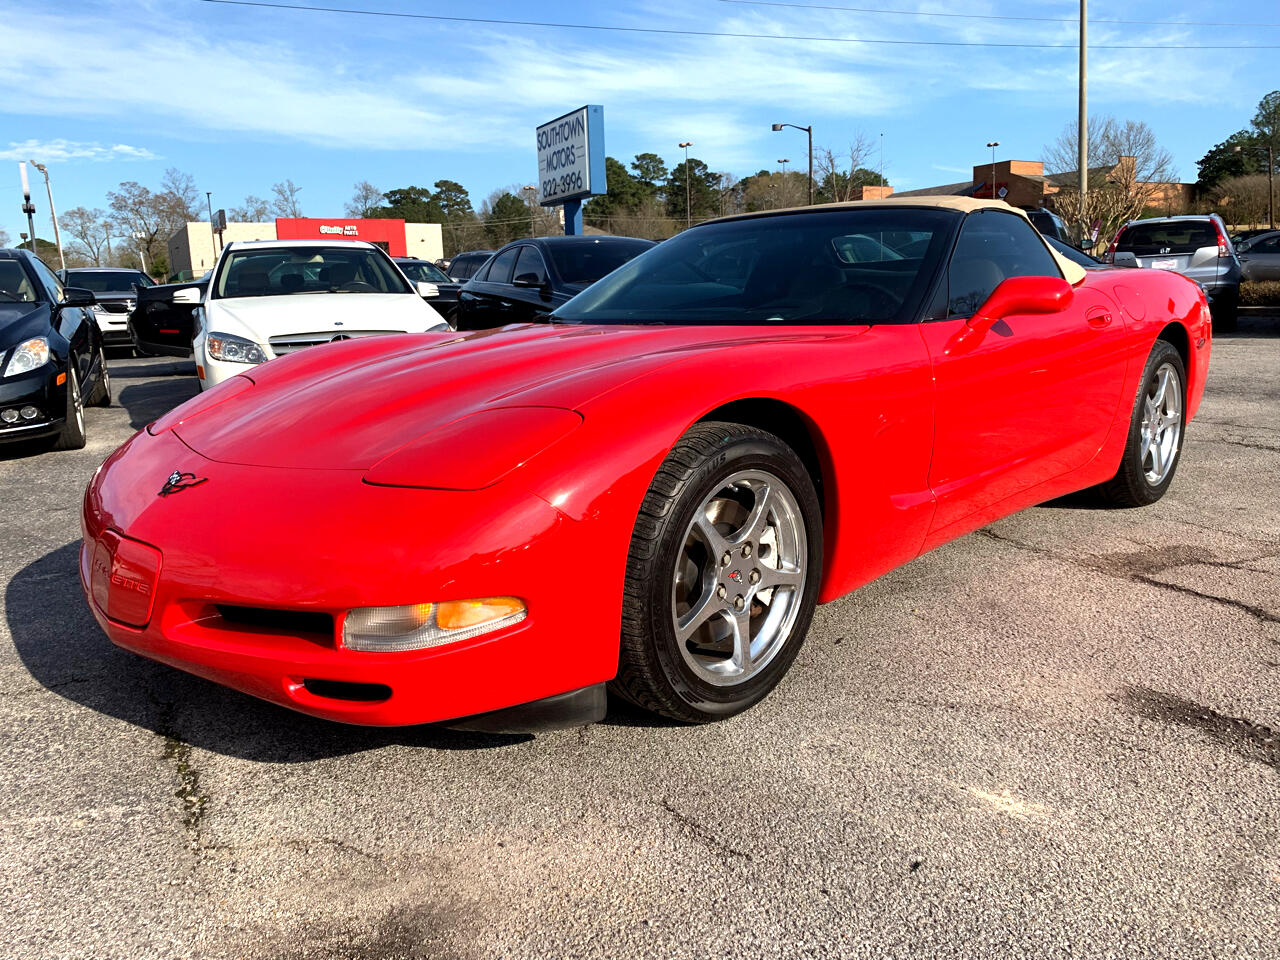 2000 Chevrolet Corvette 1LT Coupe Automatic